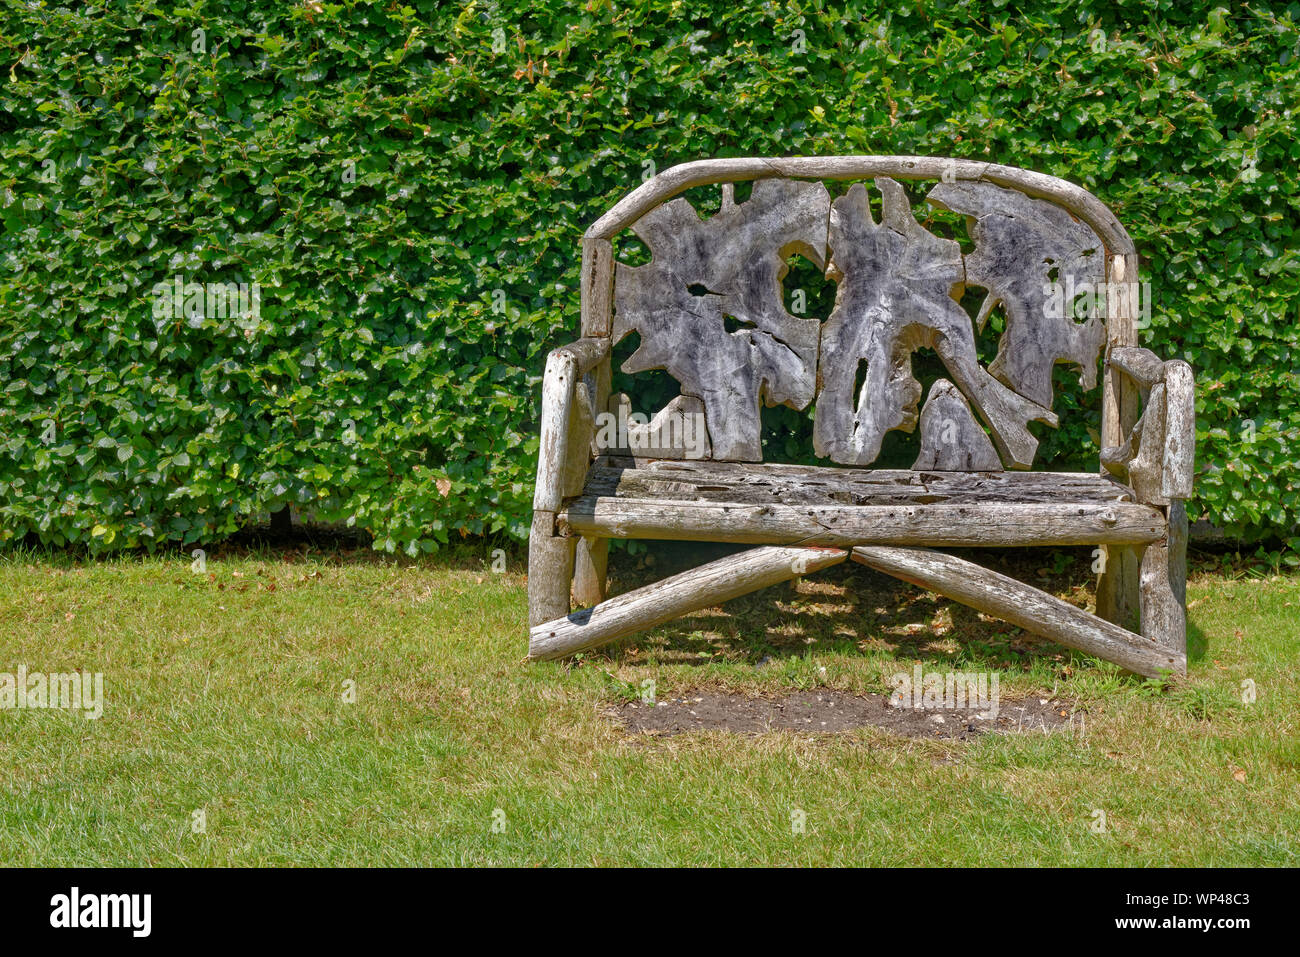 Fine Ornate Rustic Wooden Garden Bench Seat Made From Recycled Machost Co Dining Chair Design Ideas Machostcouk